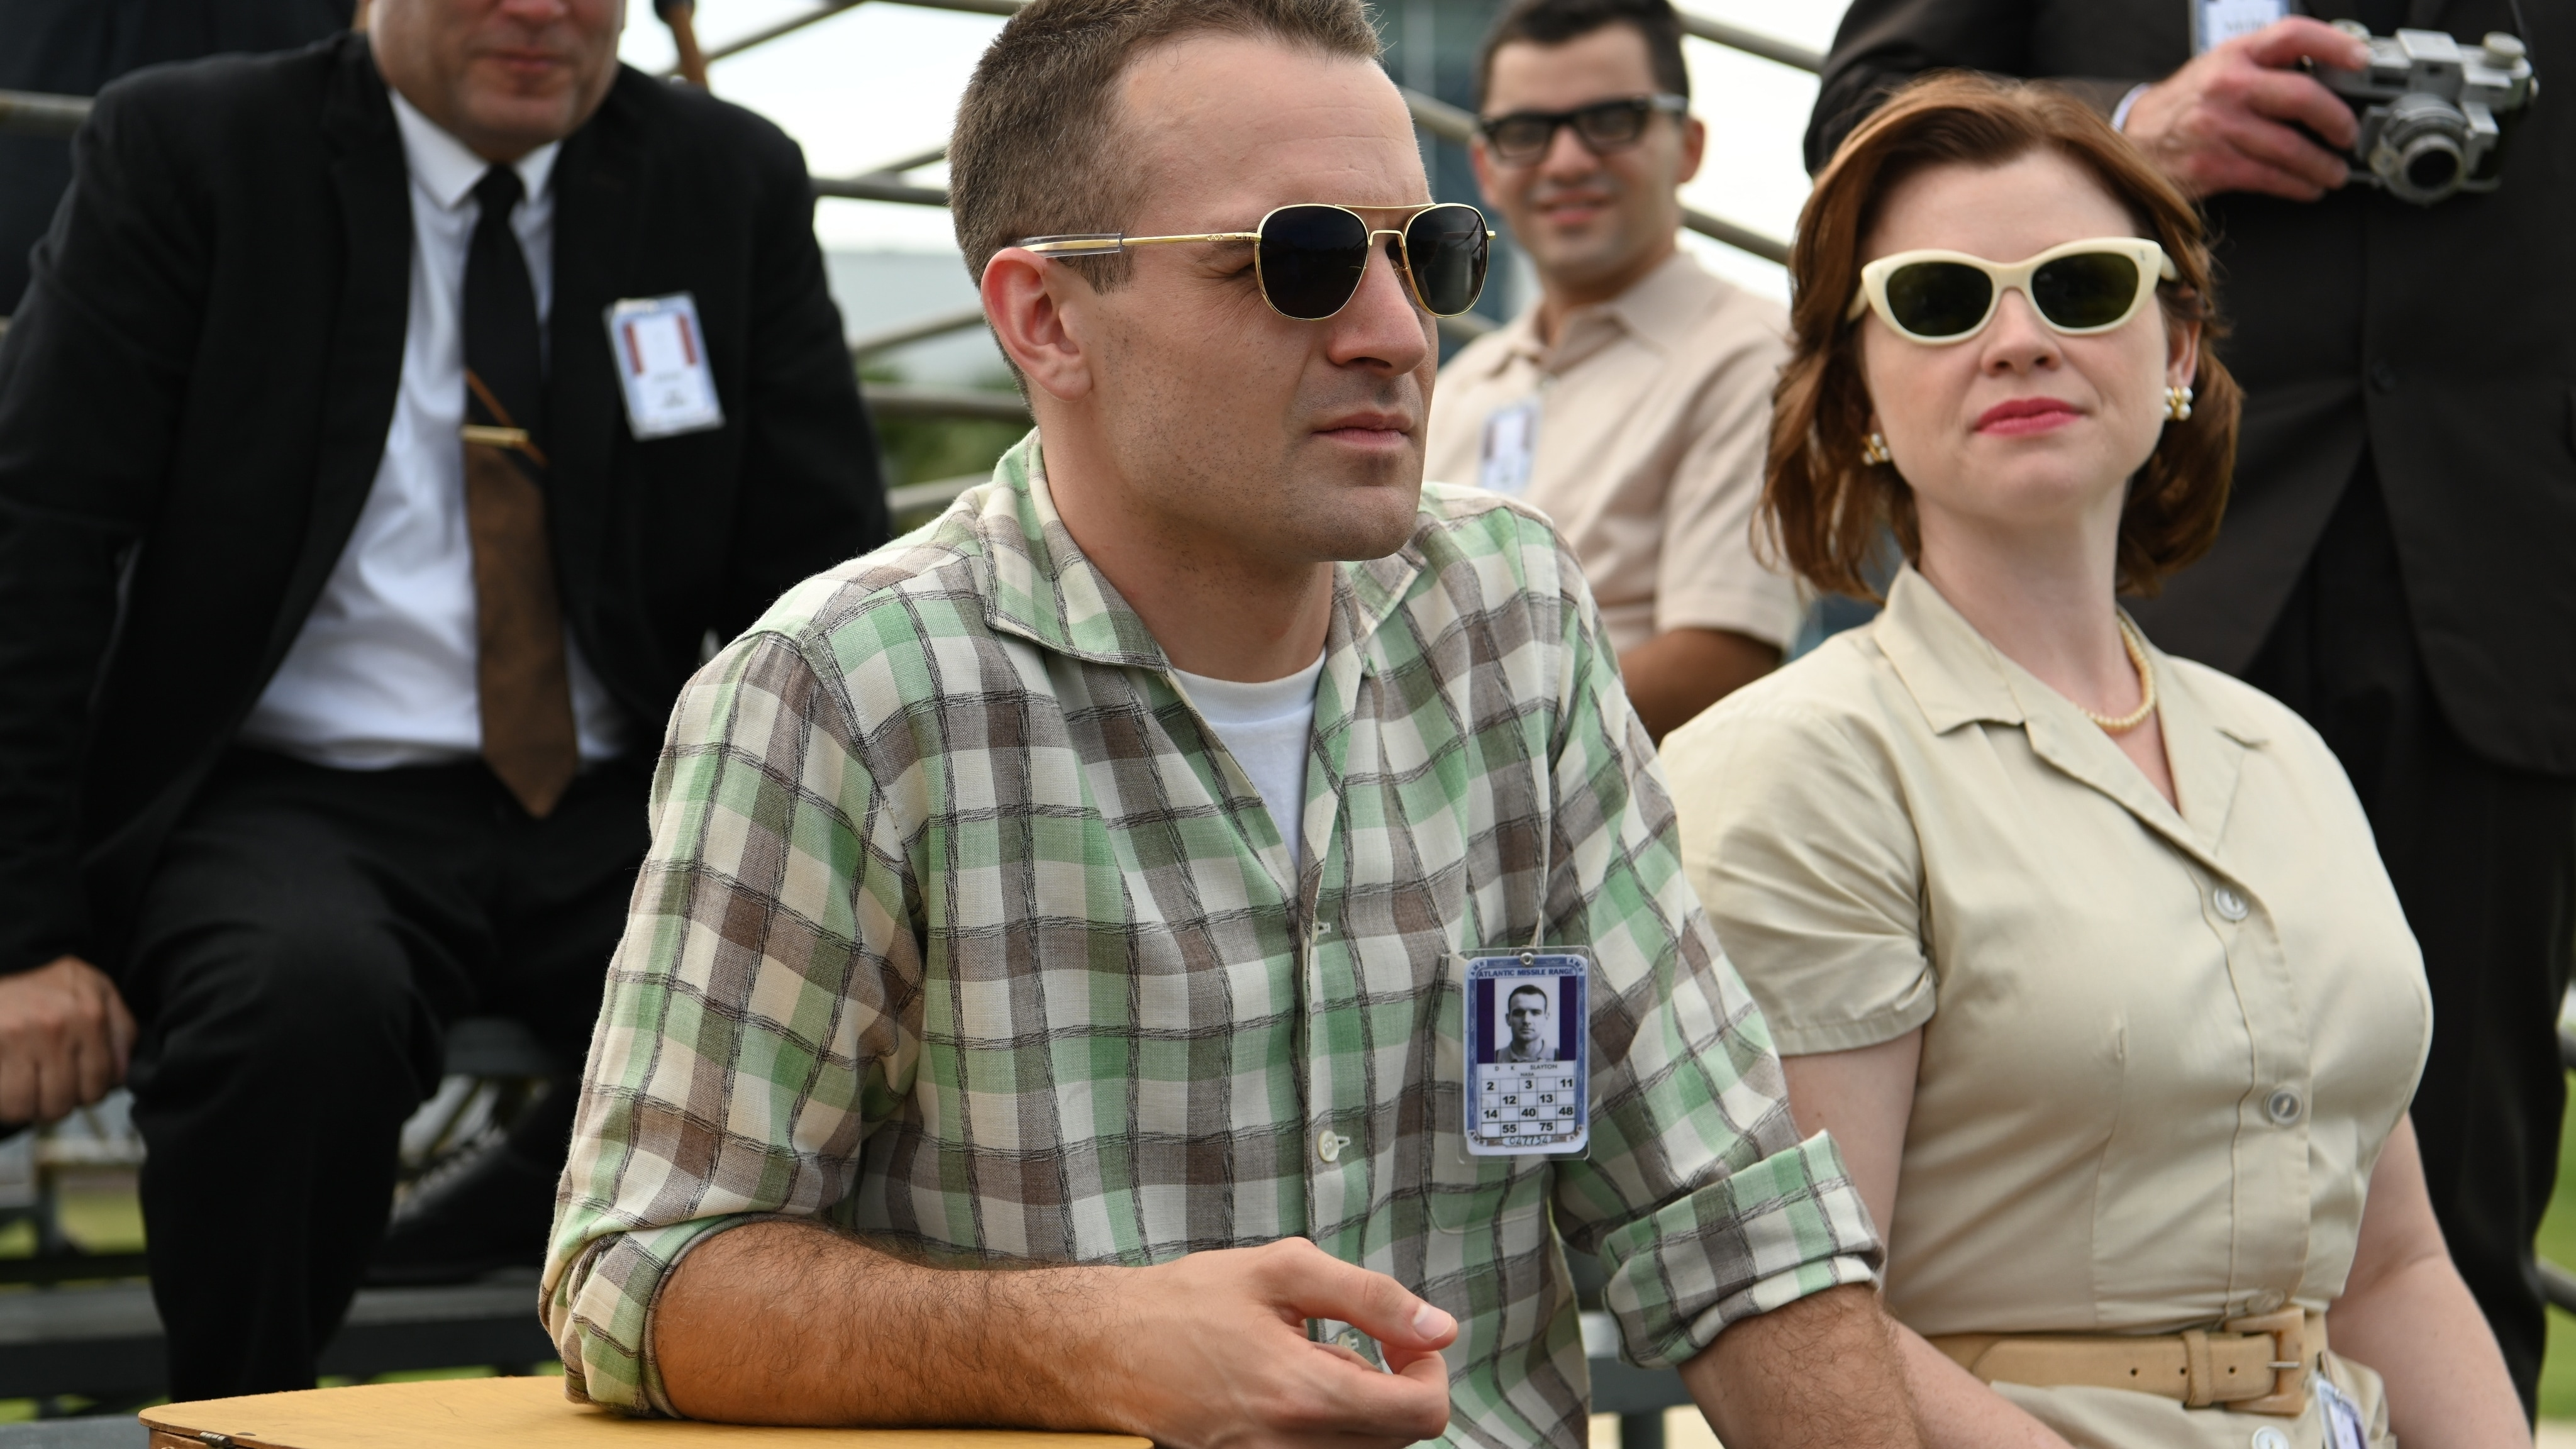 Deke Slayton played by Micah Stock and Marge Slayton played by Victoria White watch the launch of a test rocket in National Geographic's THE RIGHT STUFF streaming on Disney+. (National Geographic/Gene Page)